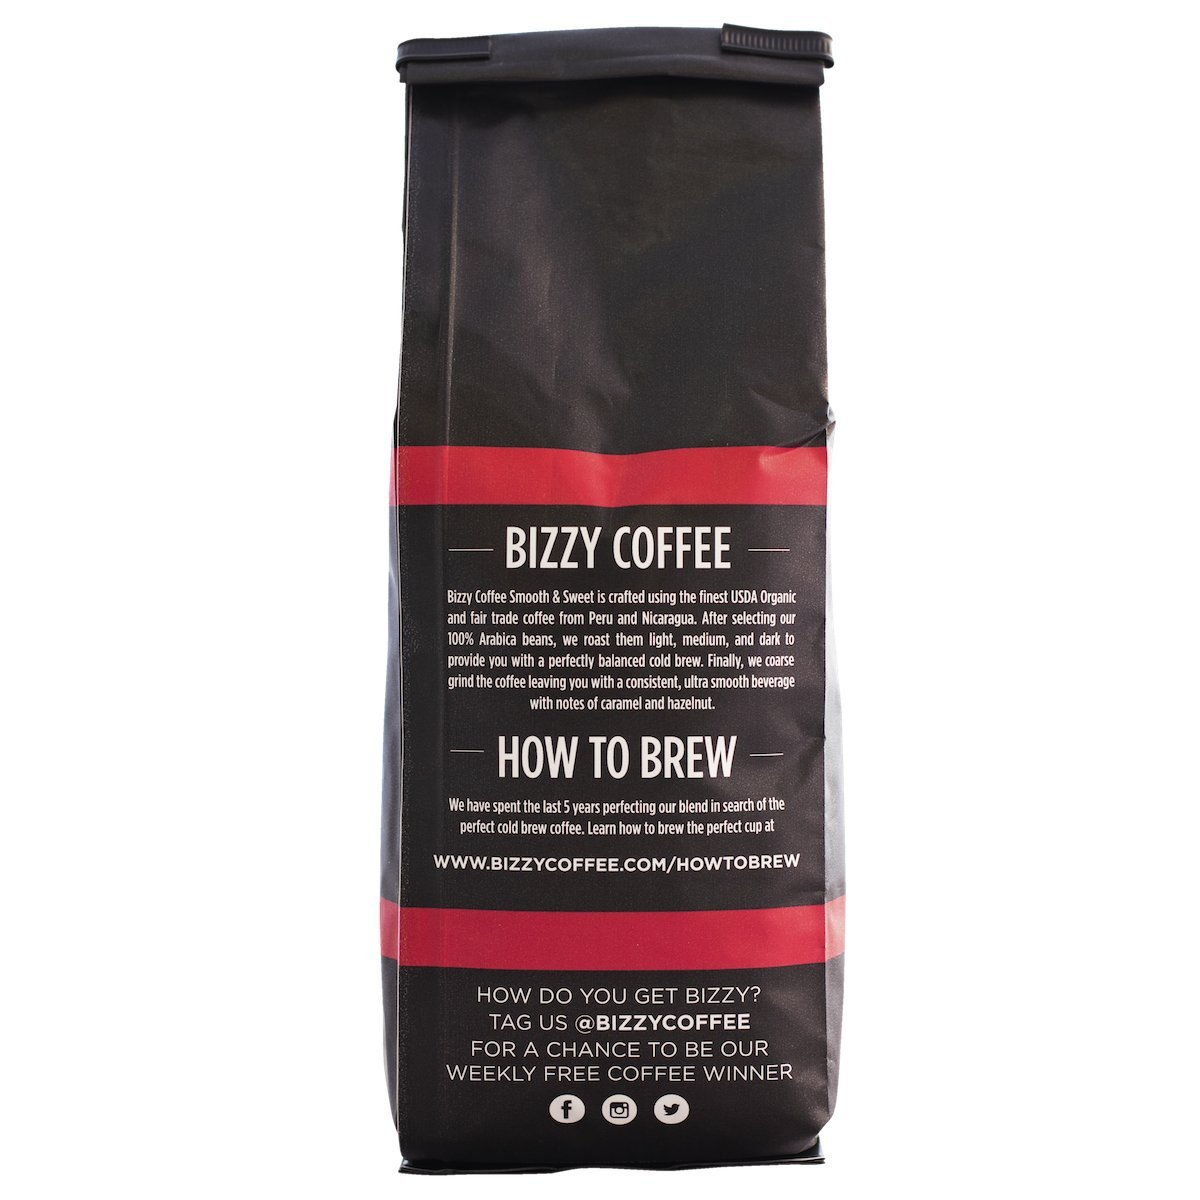 Bizzy Organic Cold Brew Coffee - Smooth & Sweet Blend - Coarse Ground Coffee - 1 Pound by Bizzy (Image #2)